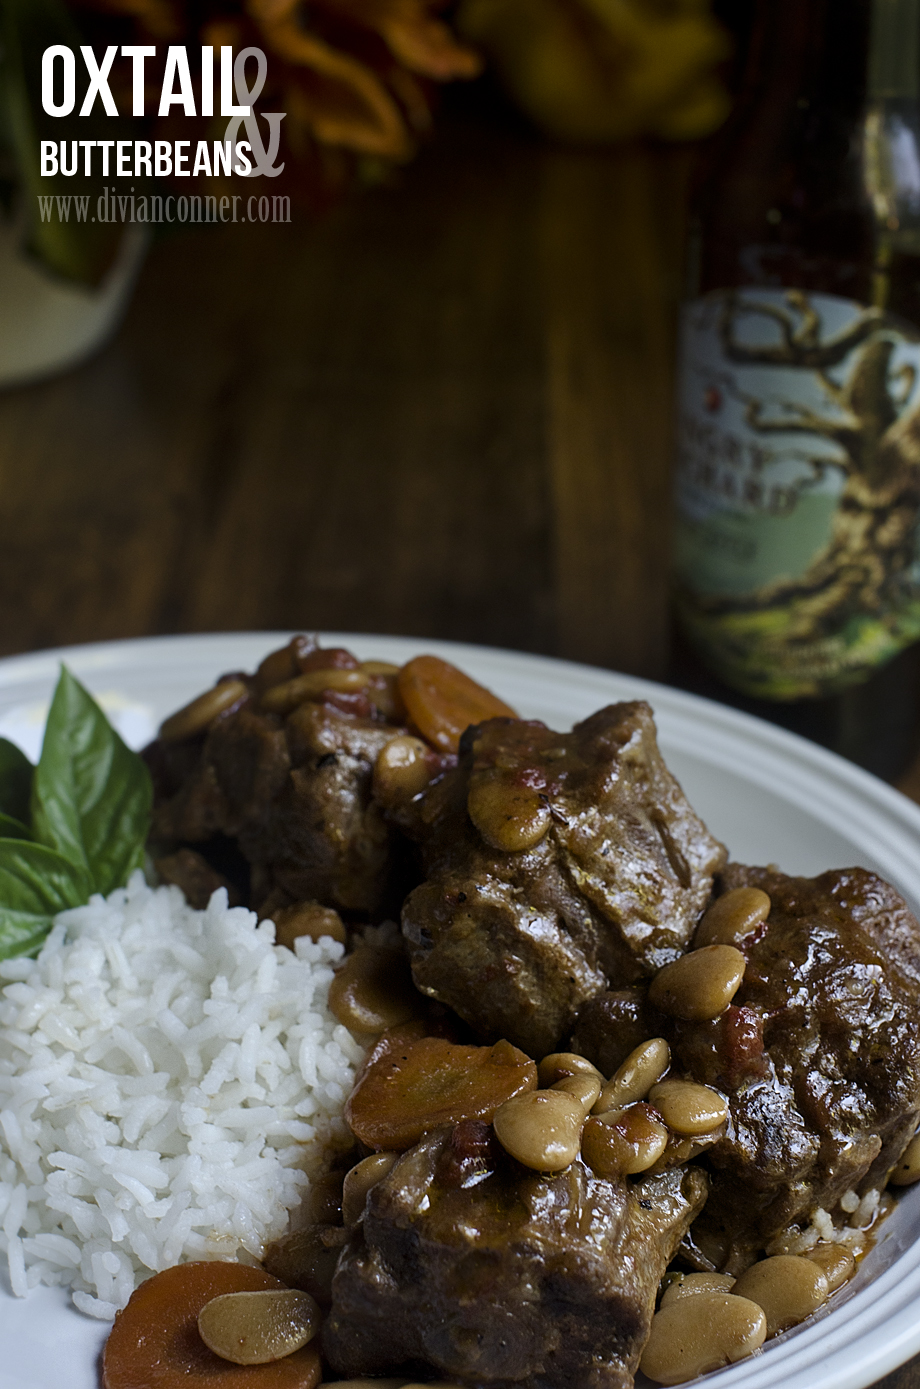 Oxtails and butter beans divian l conner oxtails and butter beans forumfinder Choice Image